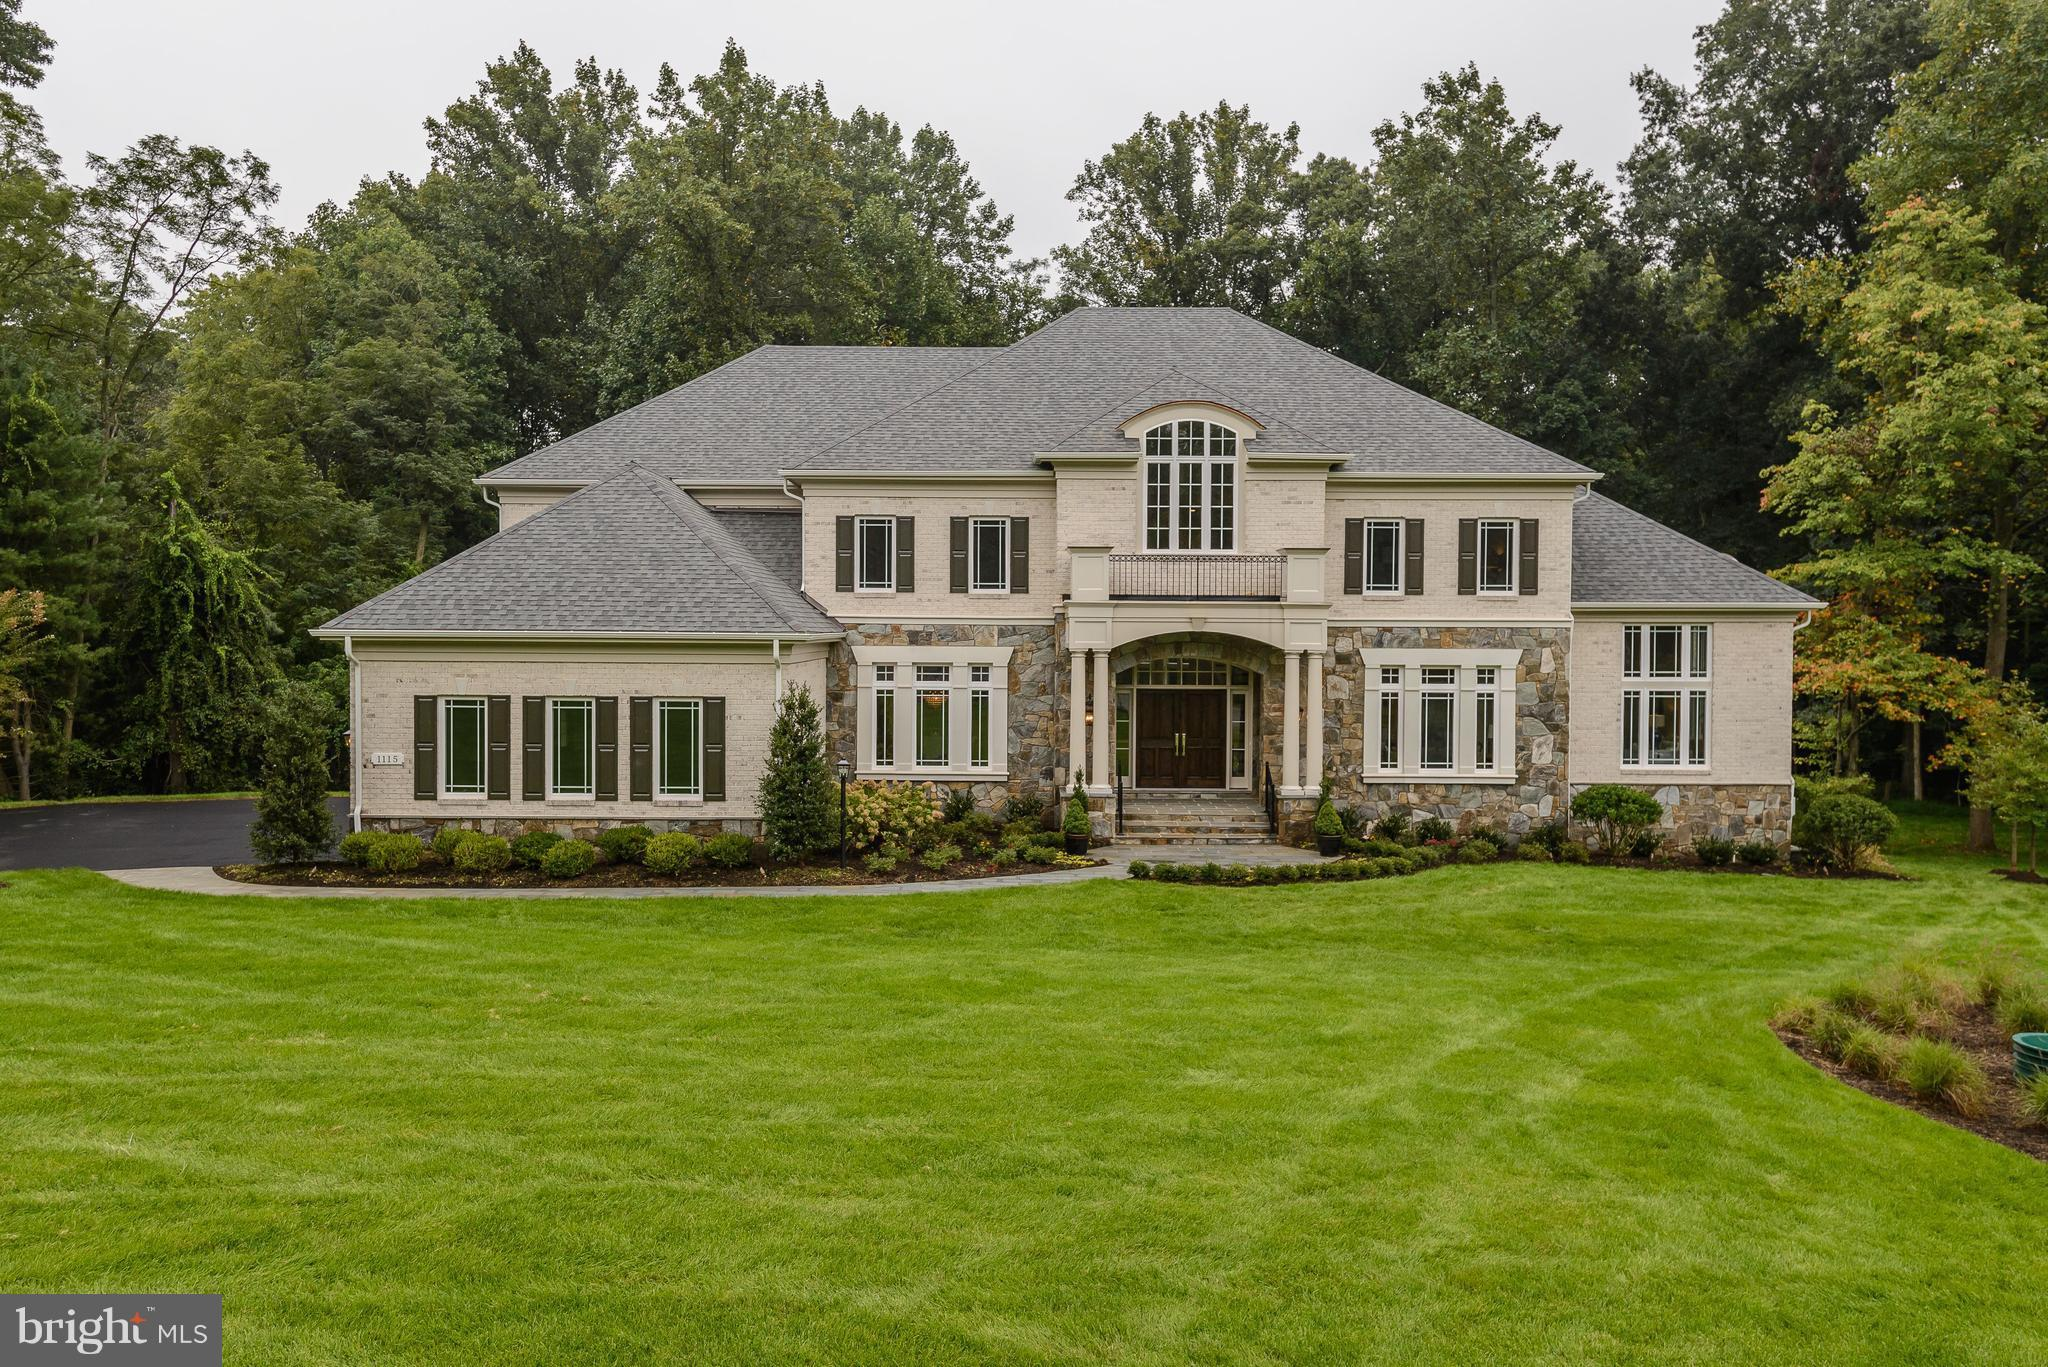 Welcome to Vale Crest, Oakton's Finest Development! Delivery in Spring of 2018. 4-side brick Winthrop model with conservatory, sun room, Main level bedroom/library, upgraded trim package, gourmet kitchen and an abundance of natural light. 5 Bedrooms, 8.5 bathrooms, 4-car garage. Fully finished walk-out lower level. (Photos are of similar, furnished model.) Completed Sept '18.